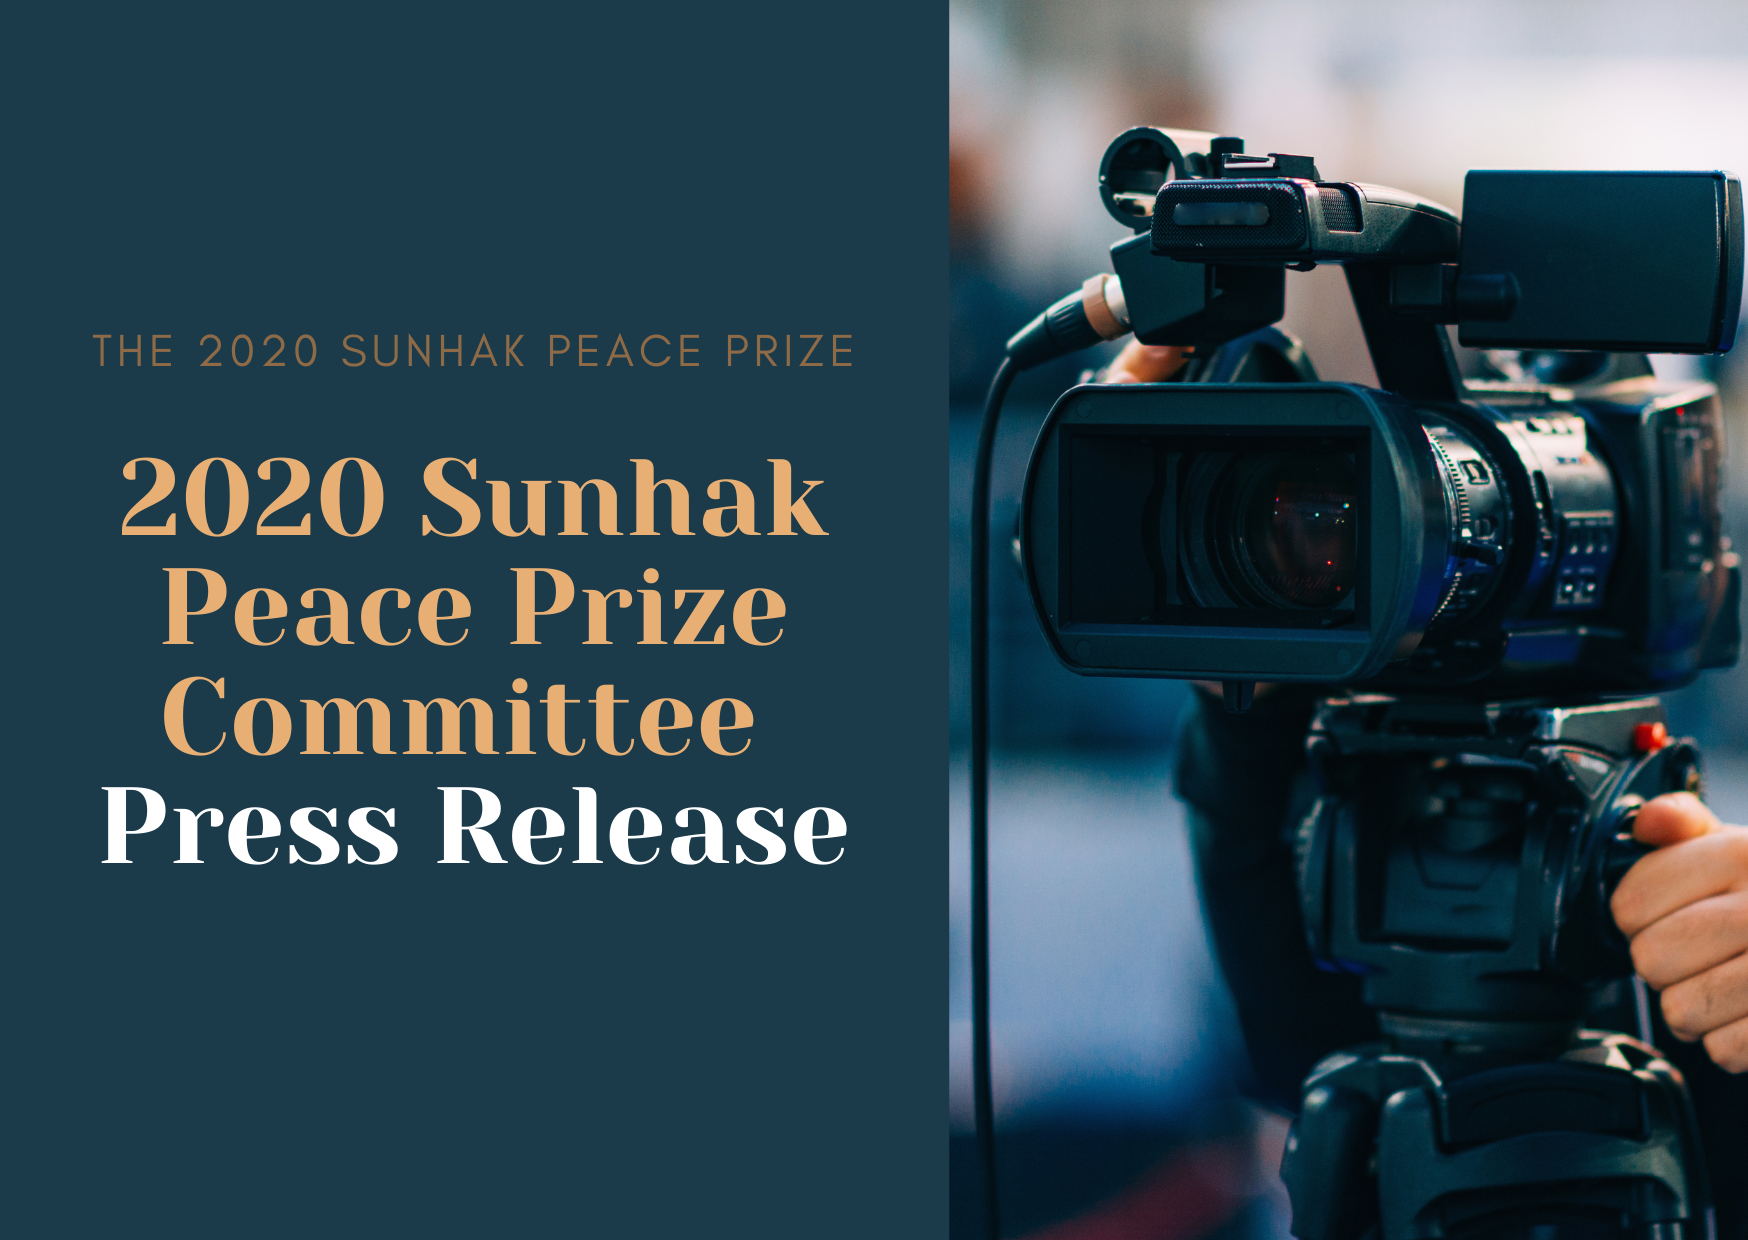 2020 Sunhak Peace Prize Committee Press Release 썸네일